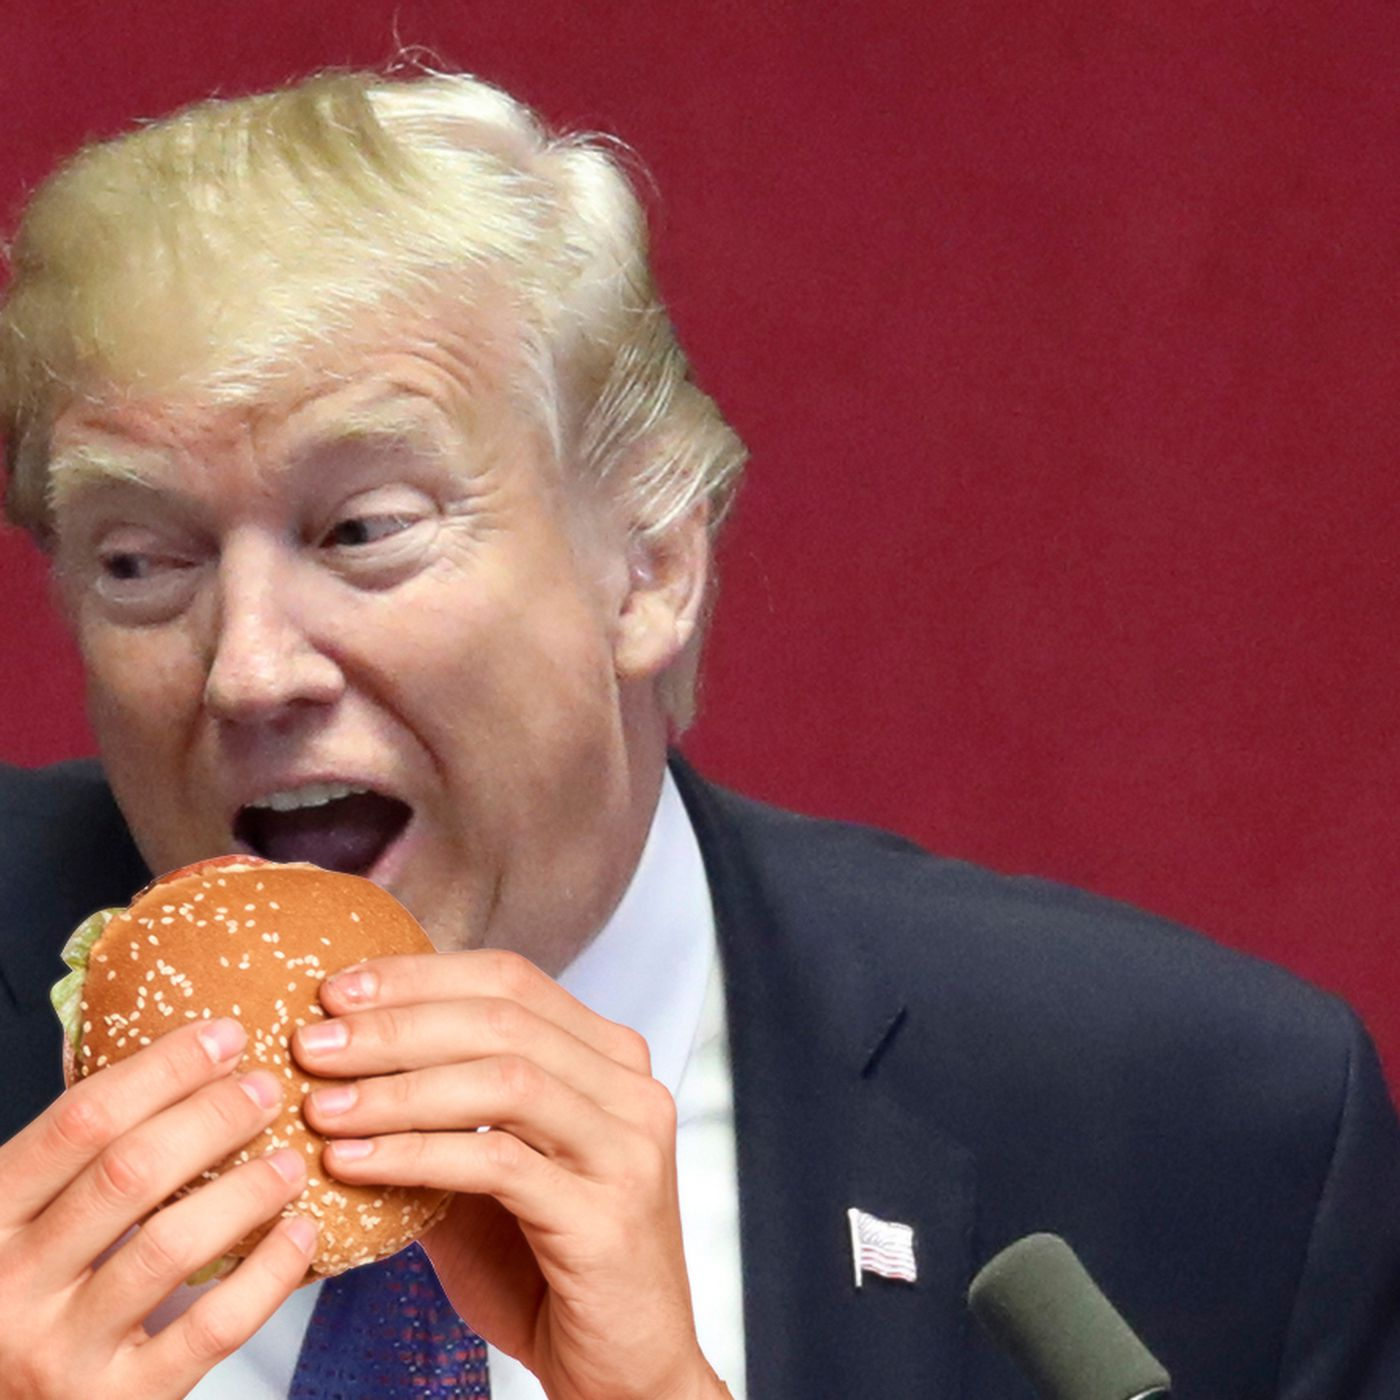 Trump S Weird Junk Food Habits Revealed By Former Campaign Manager Eater